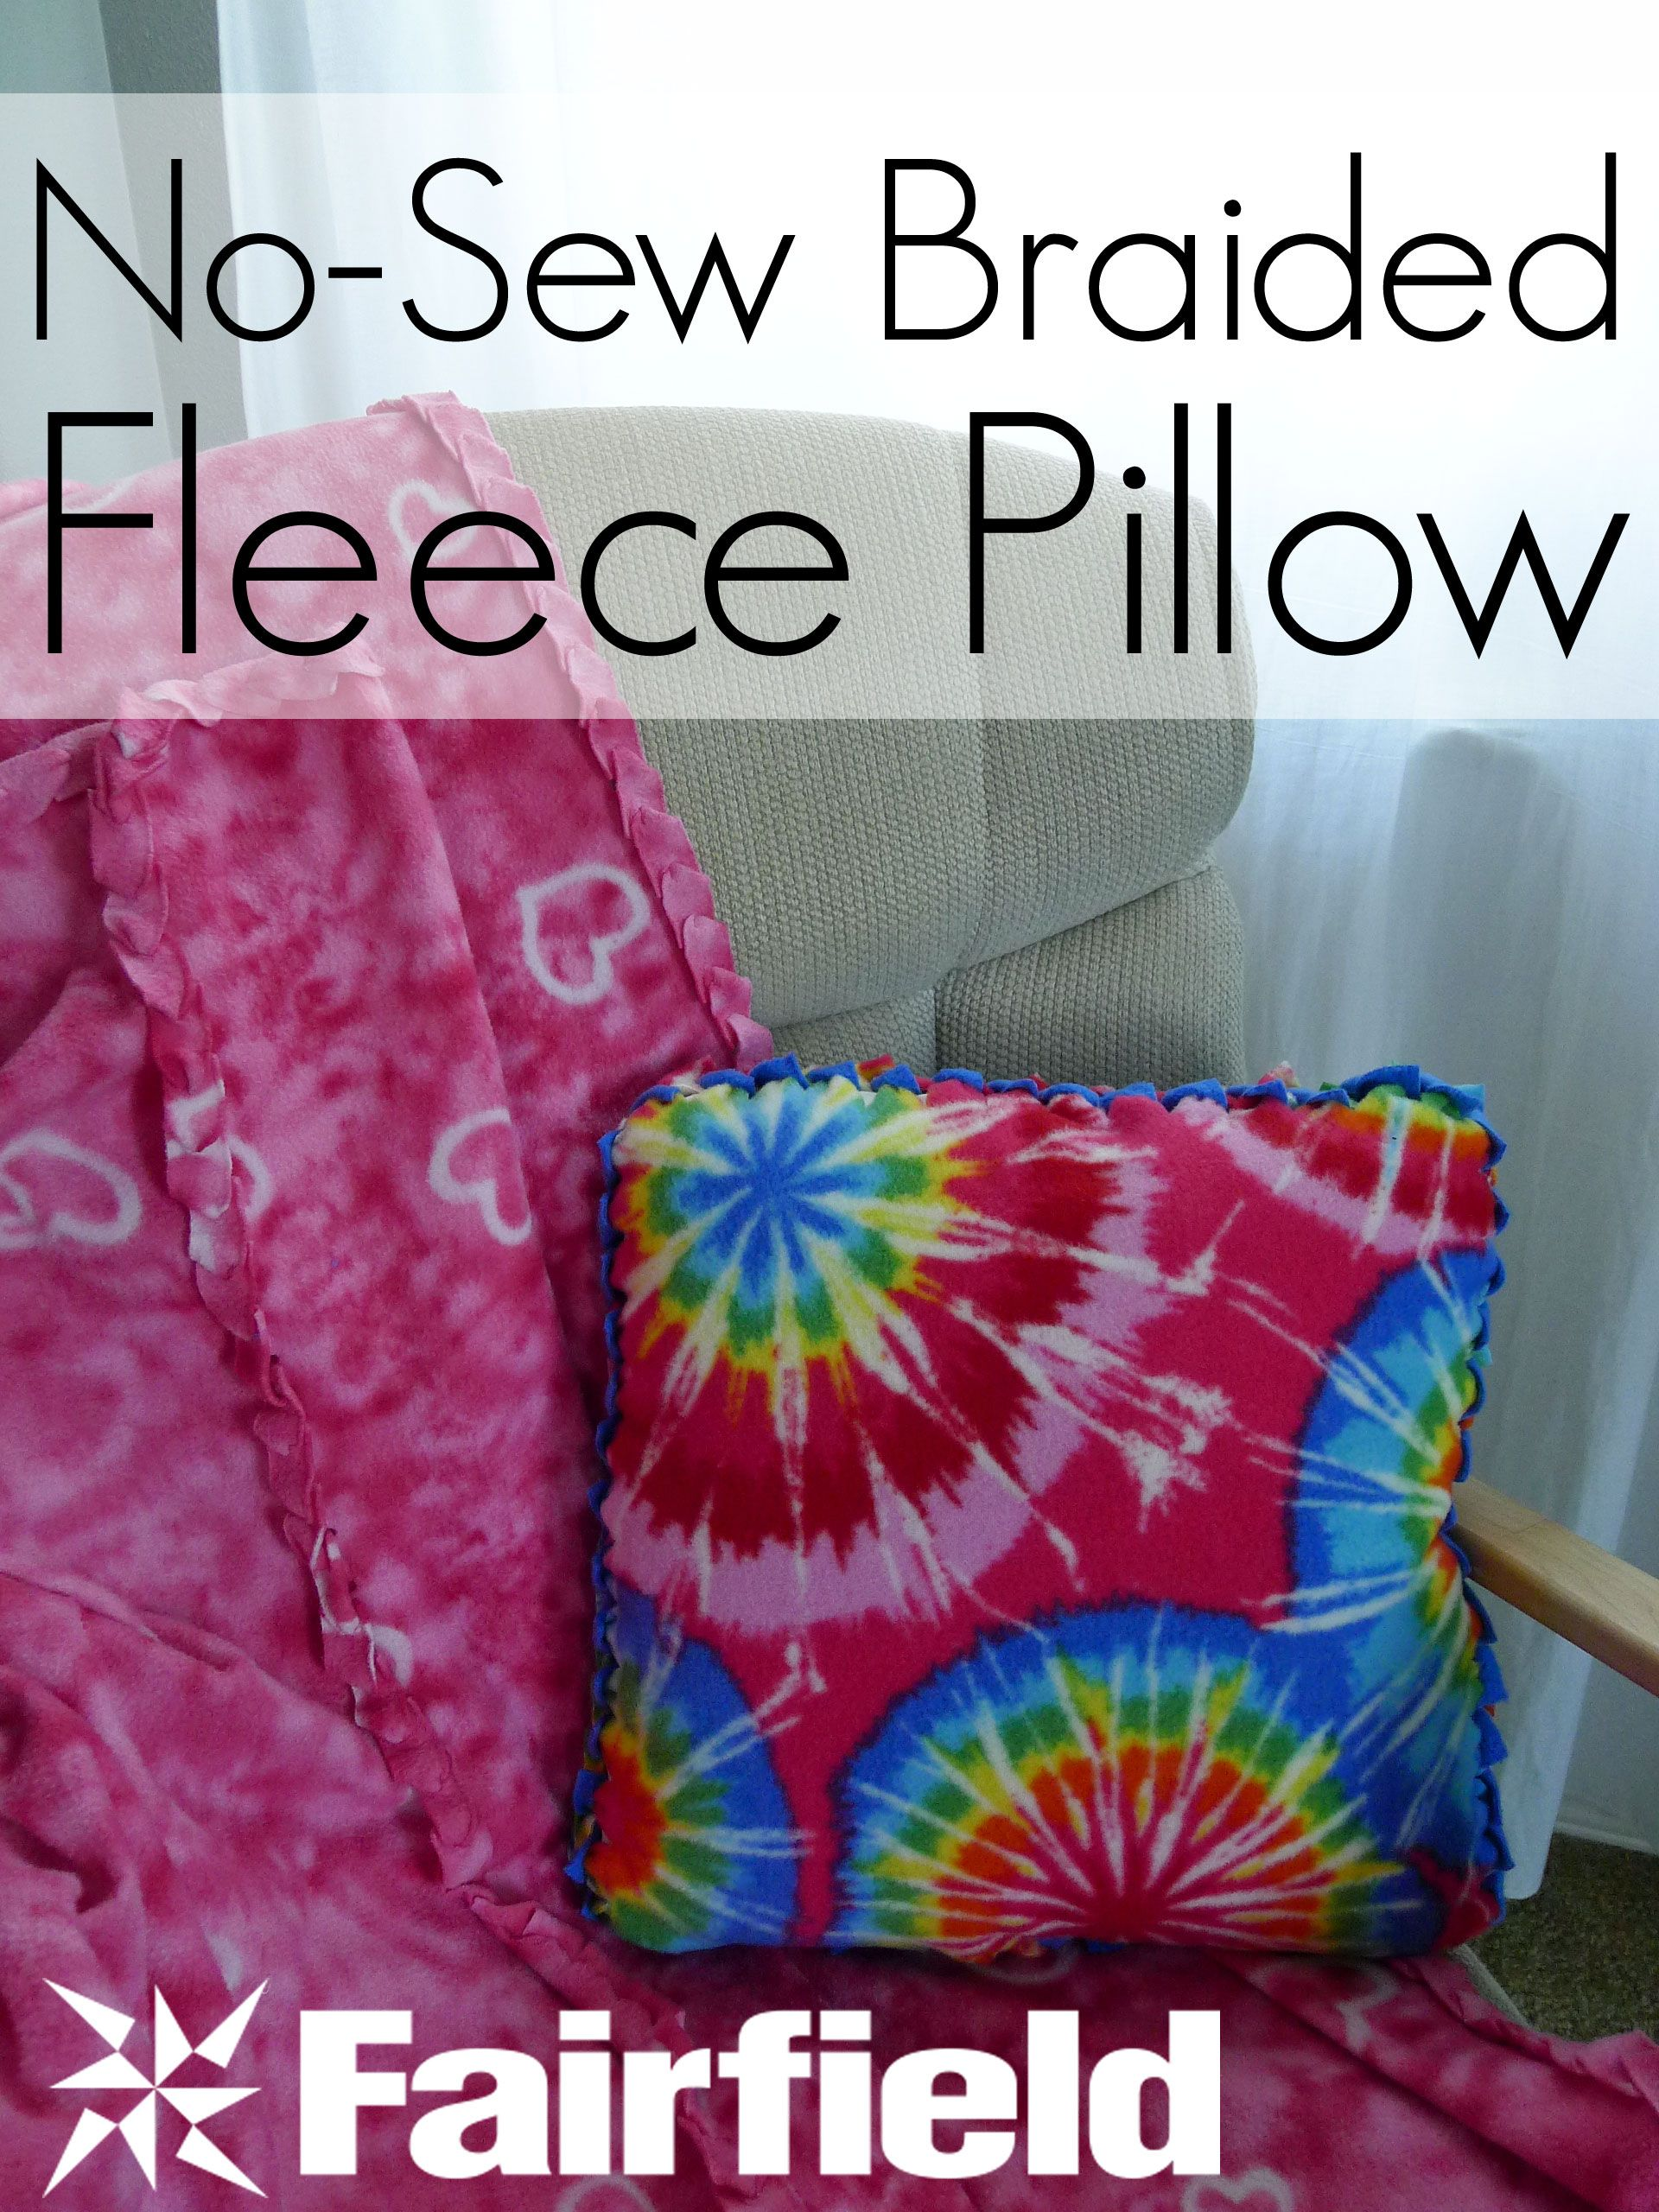 ab9543659f This No-Sew Braided-Edge Fleece Pillow is easy to make. It features a  lovely faux braided look edge that stands out well.